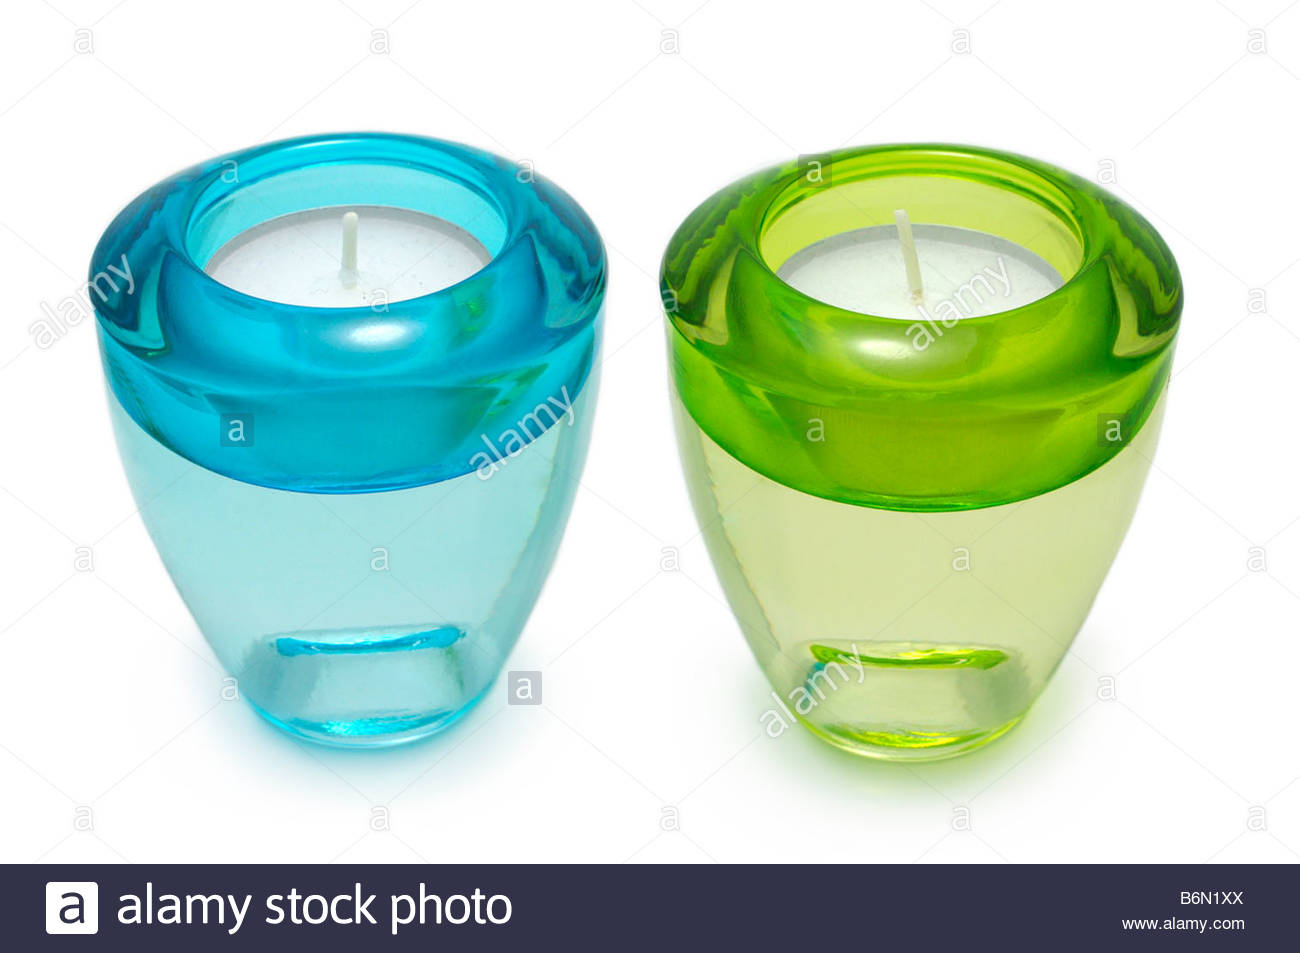 Glass Candle Holders - Stock Image